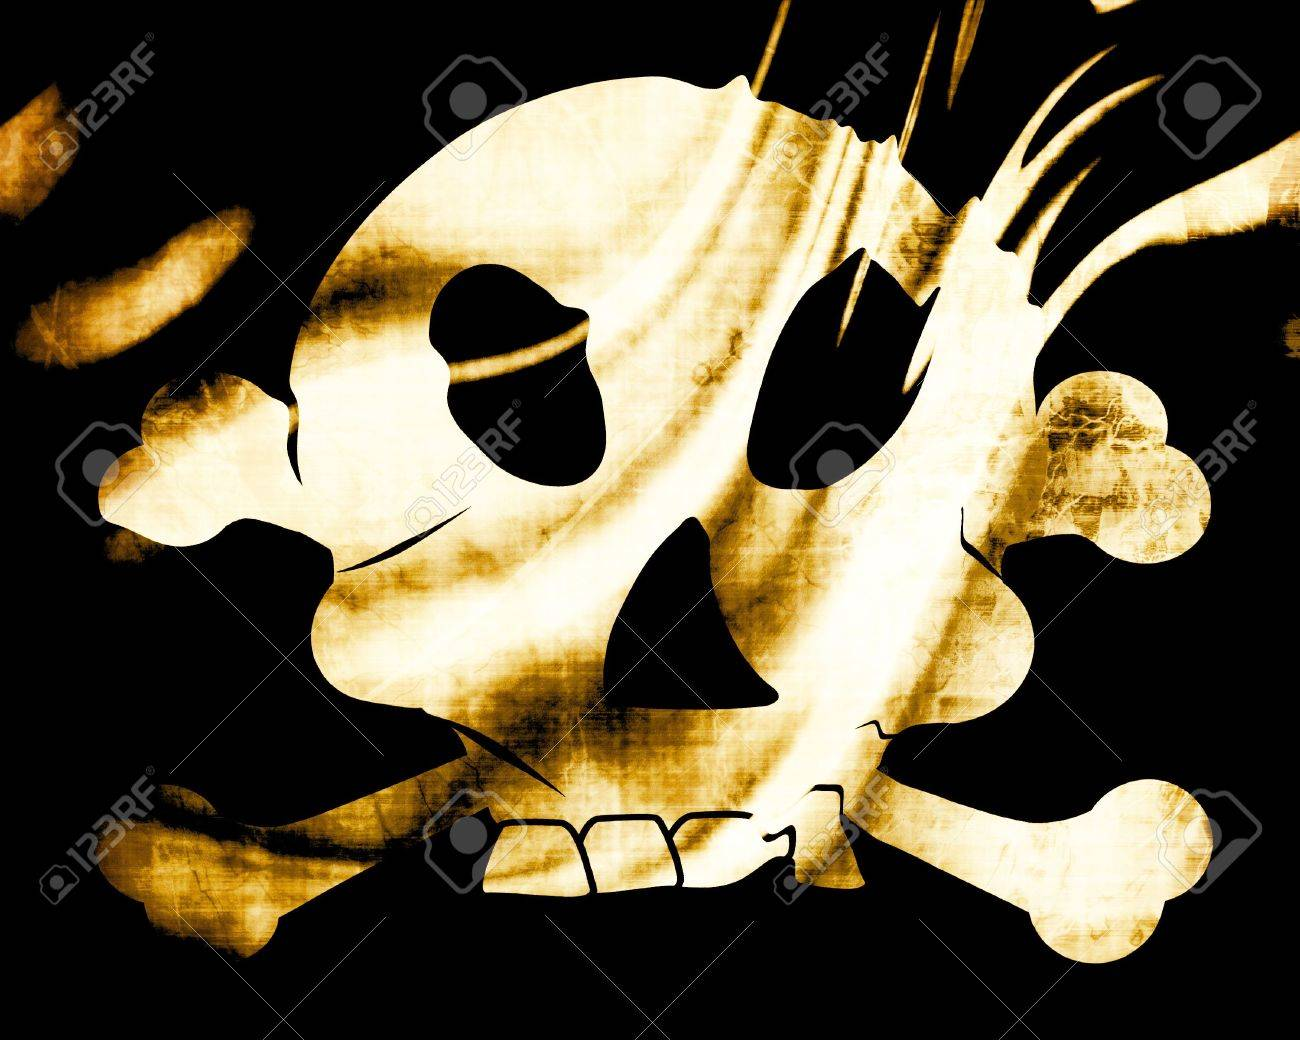 Old pirate flag with some soft folds Stock Photo - 3195536